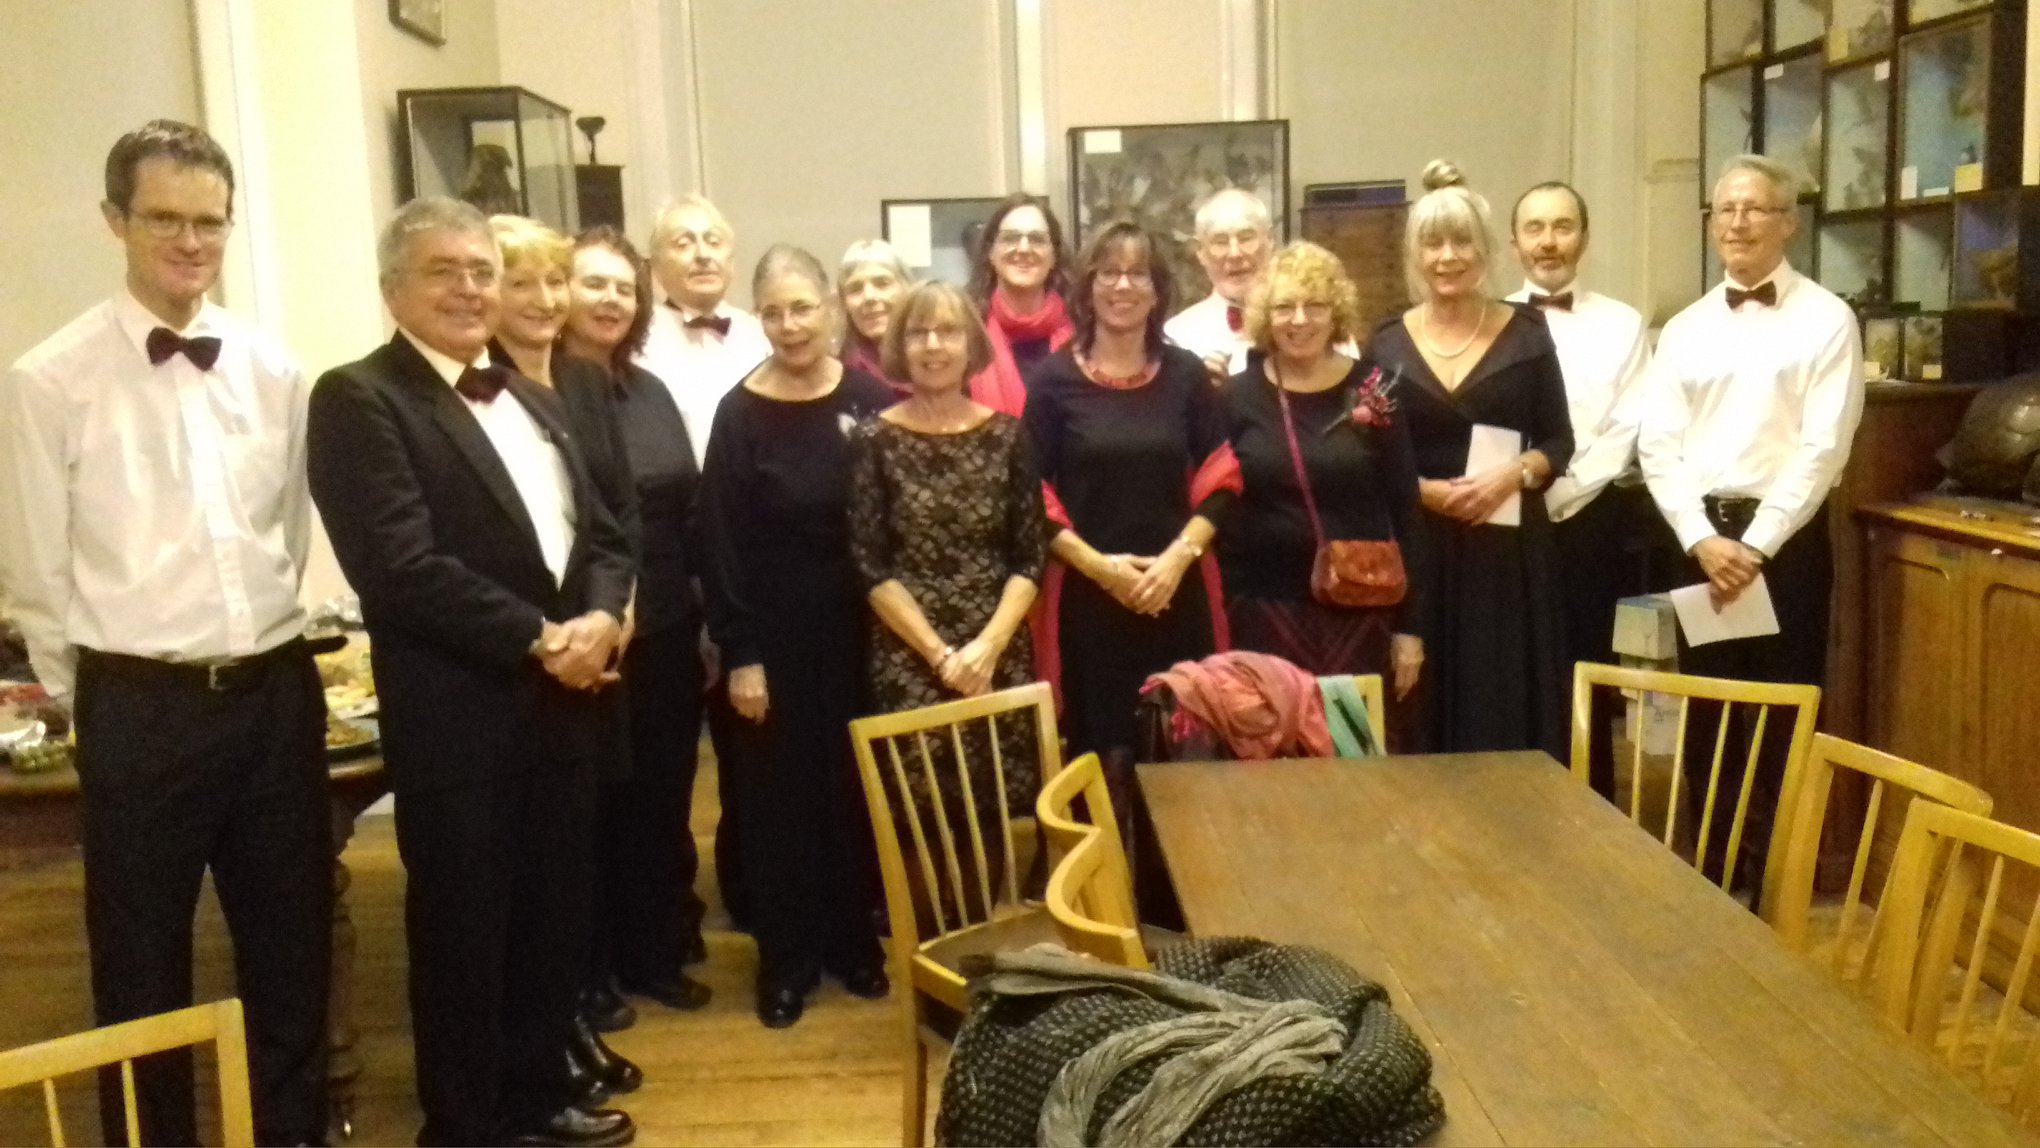 Dorset Humanists Choir – inaugural performance at Bournemouth Natural Science Society